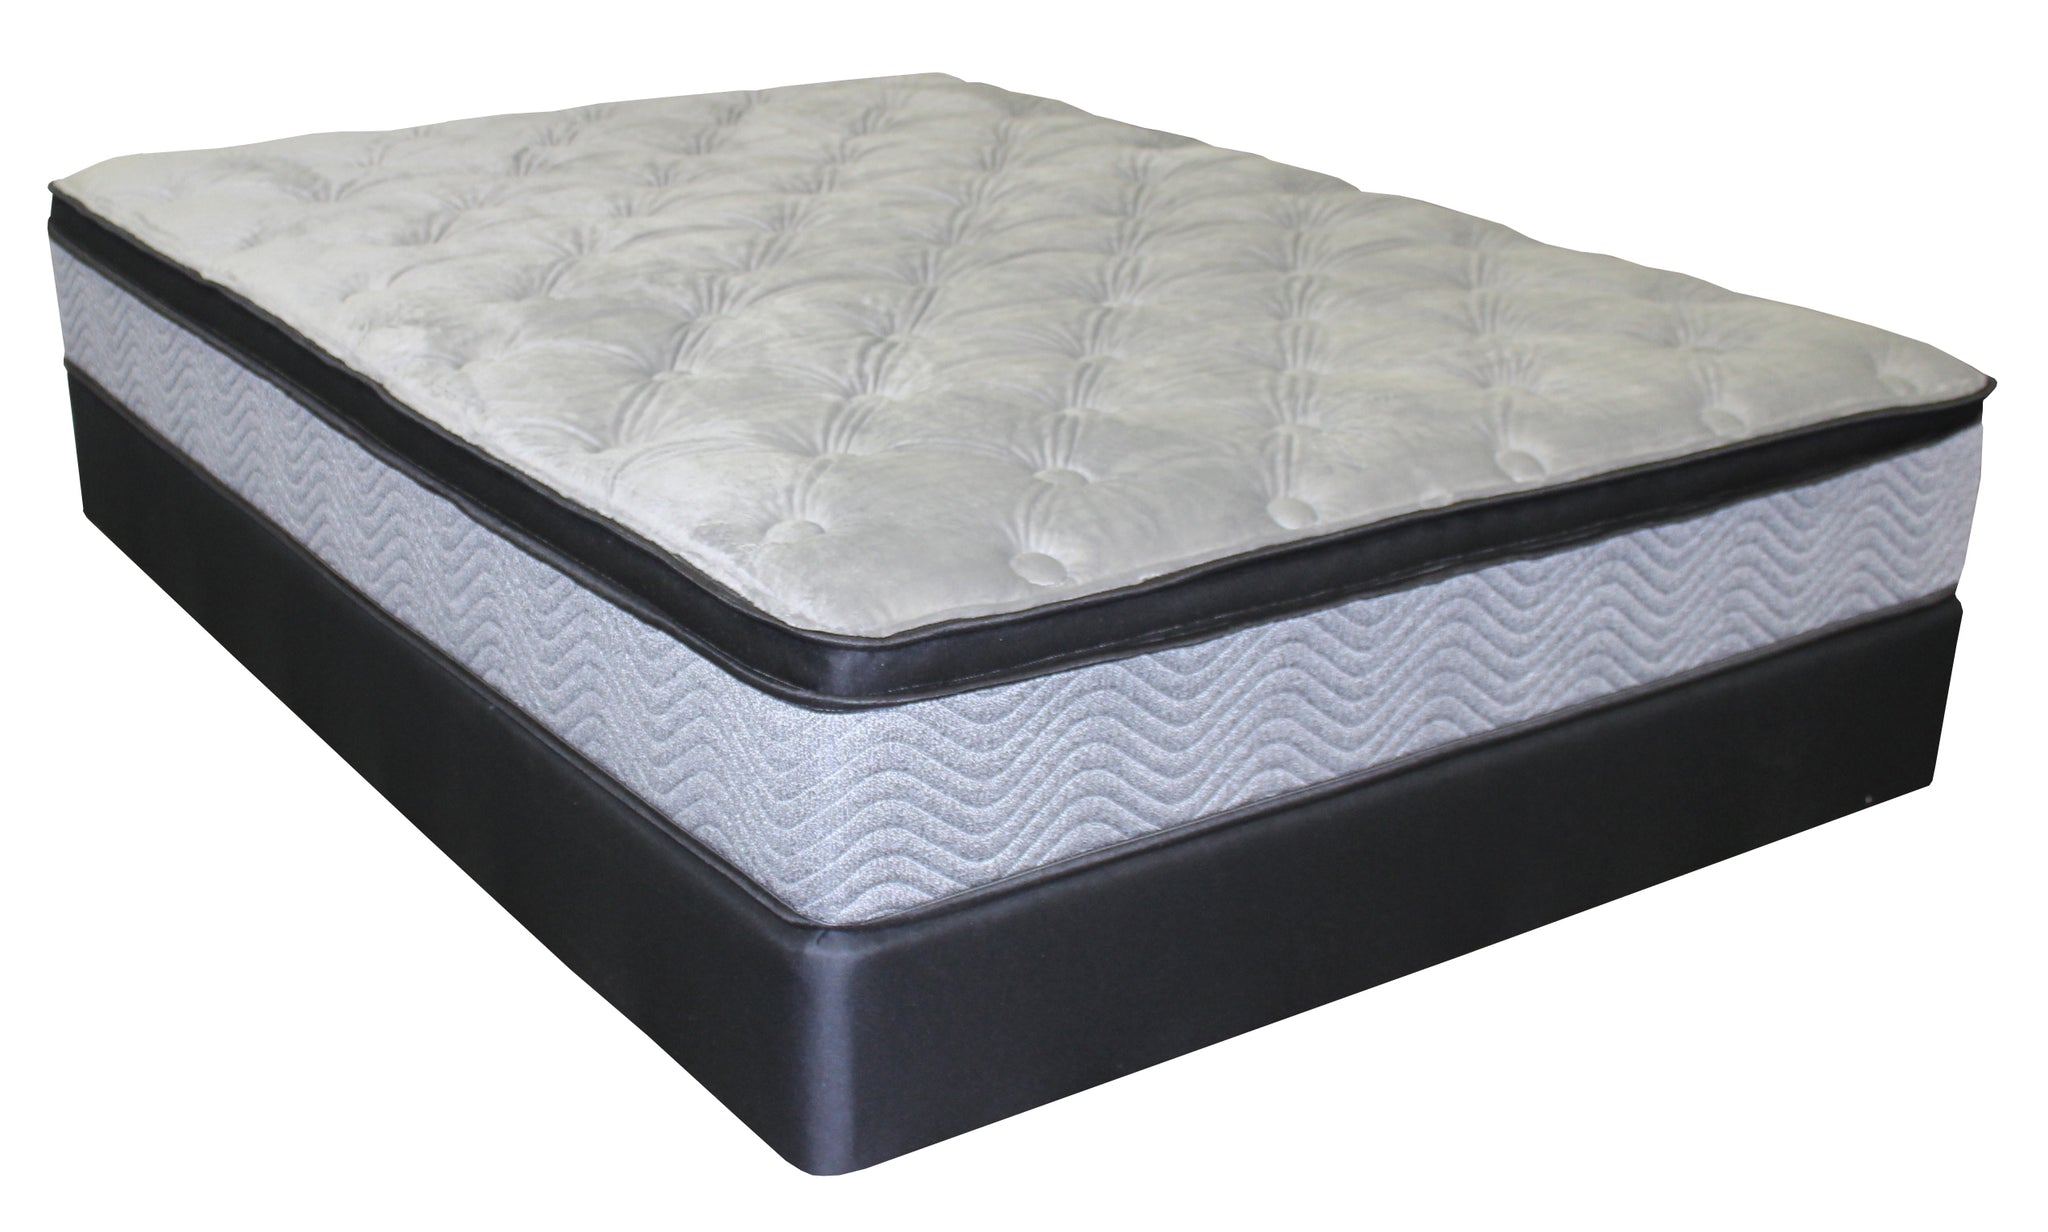 Spring Air Dublin Euro Top Mattress